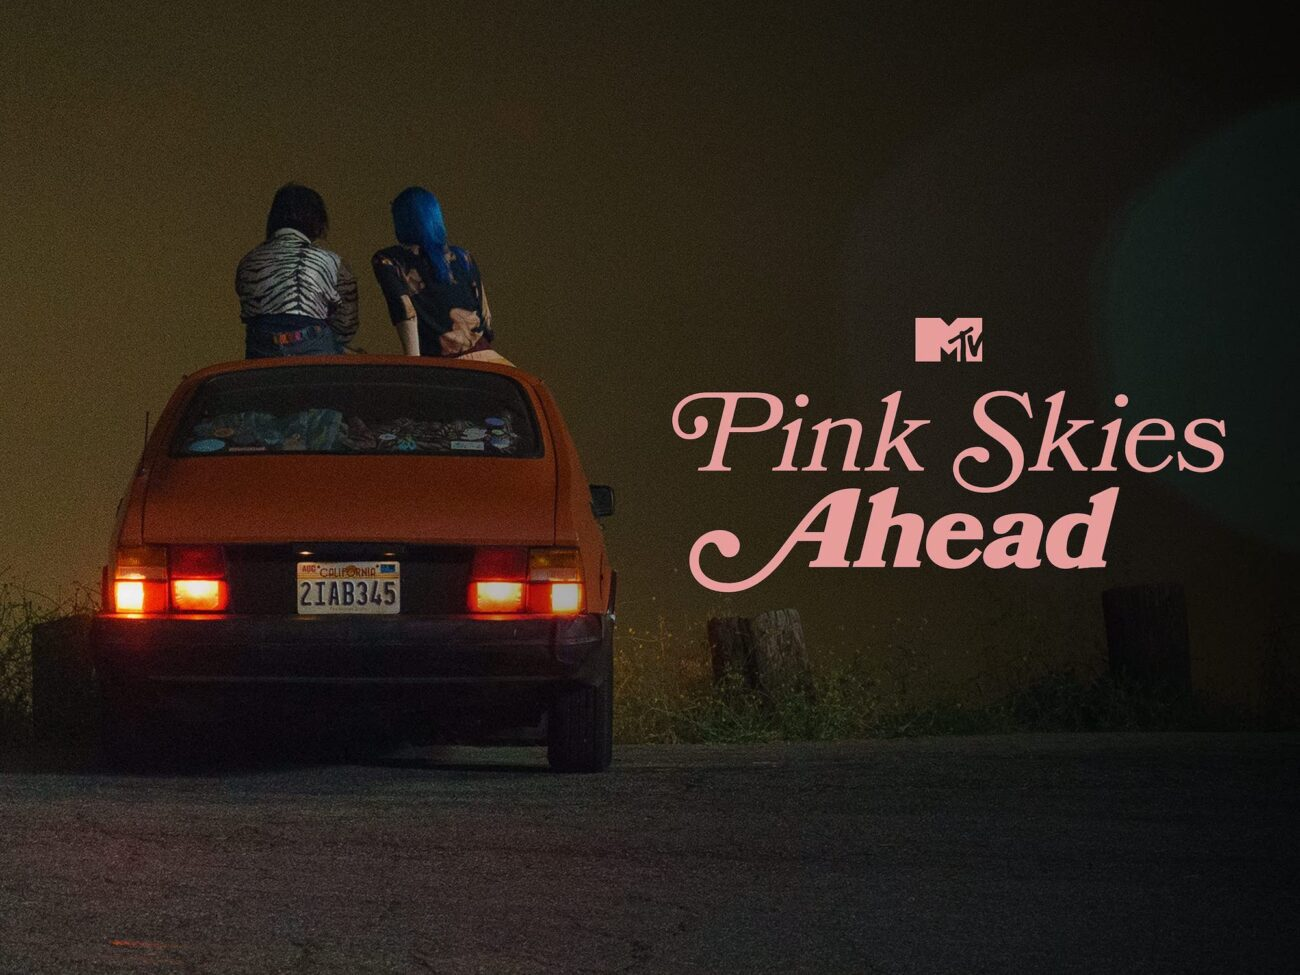 'Pink Skies Ahead' was one of the most impressive debut films to come out of 2020. Take a nostalgia trip and explore some deeper themes with the movie.